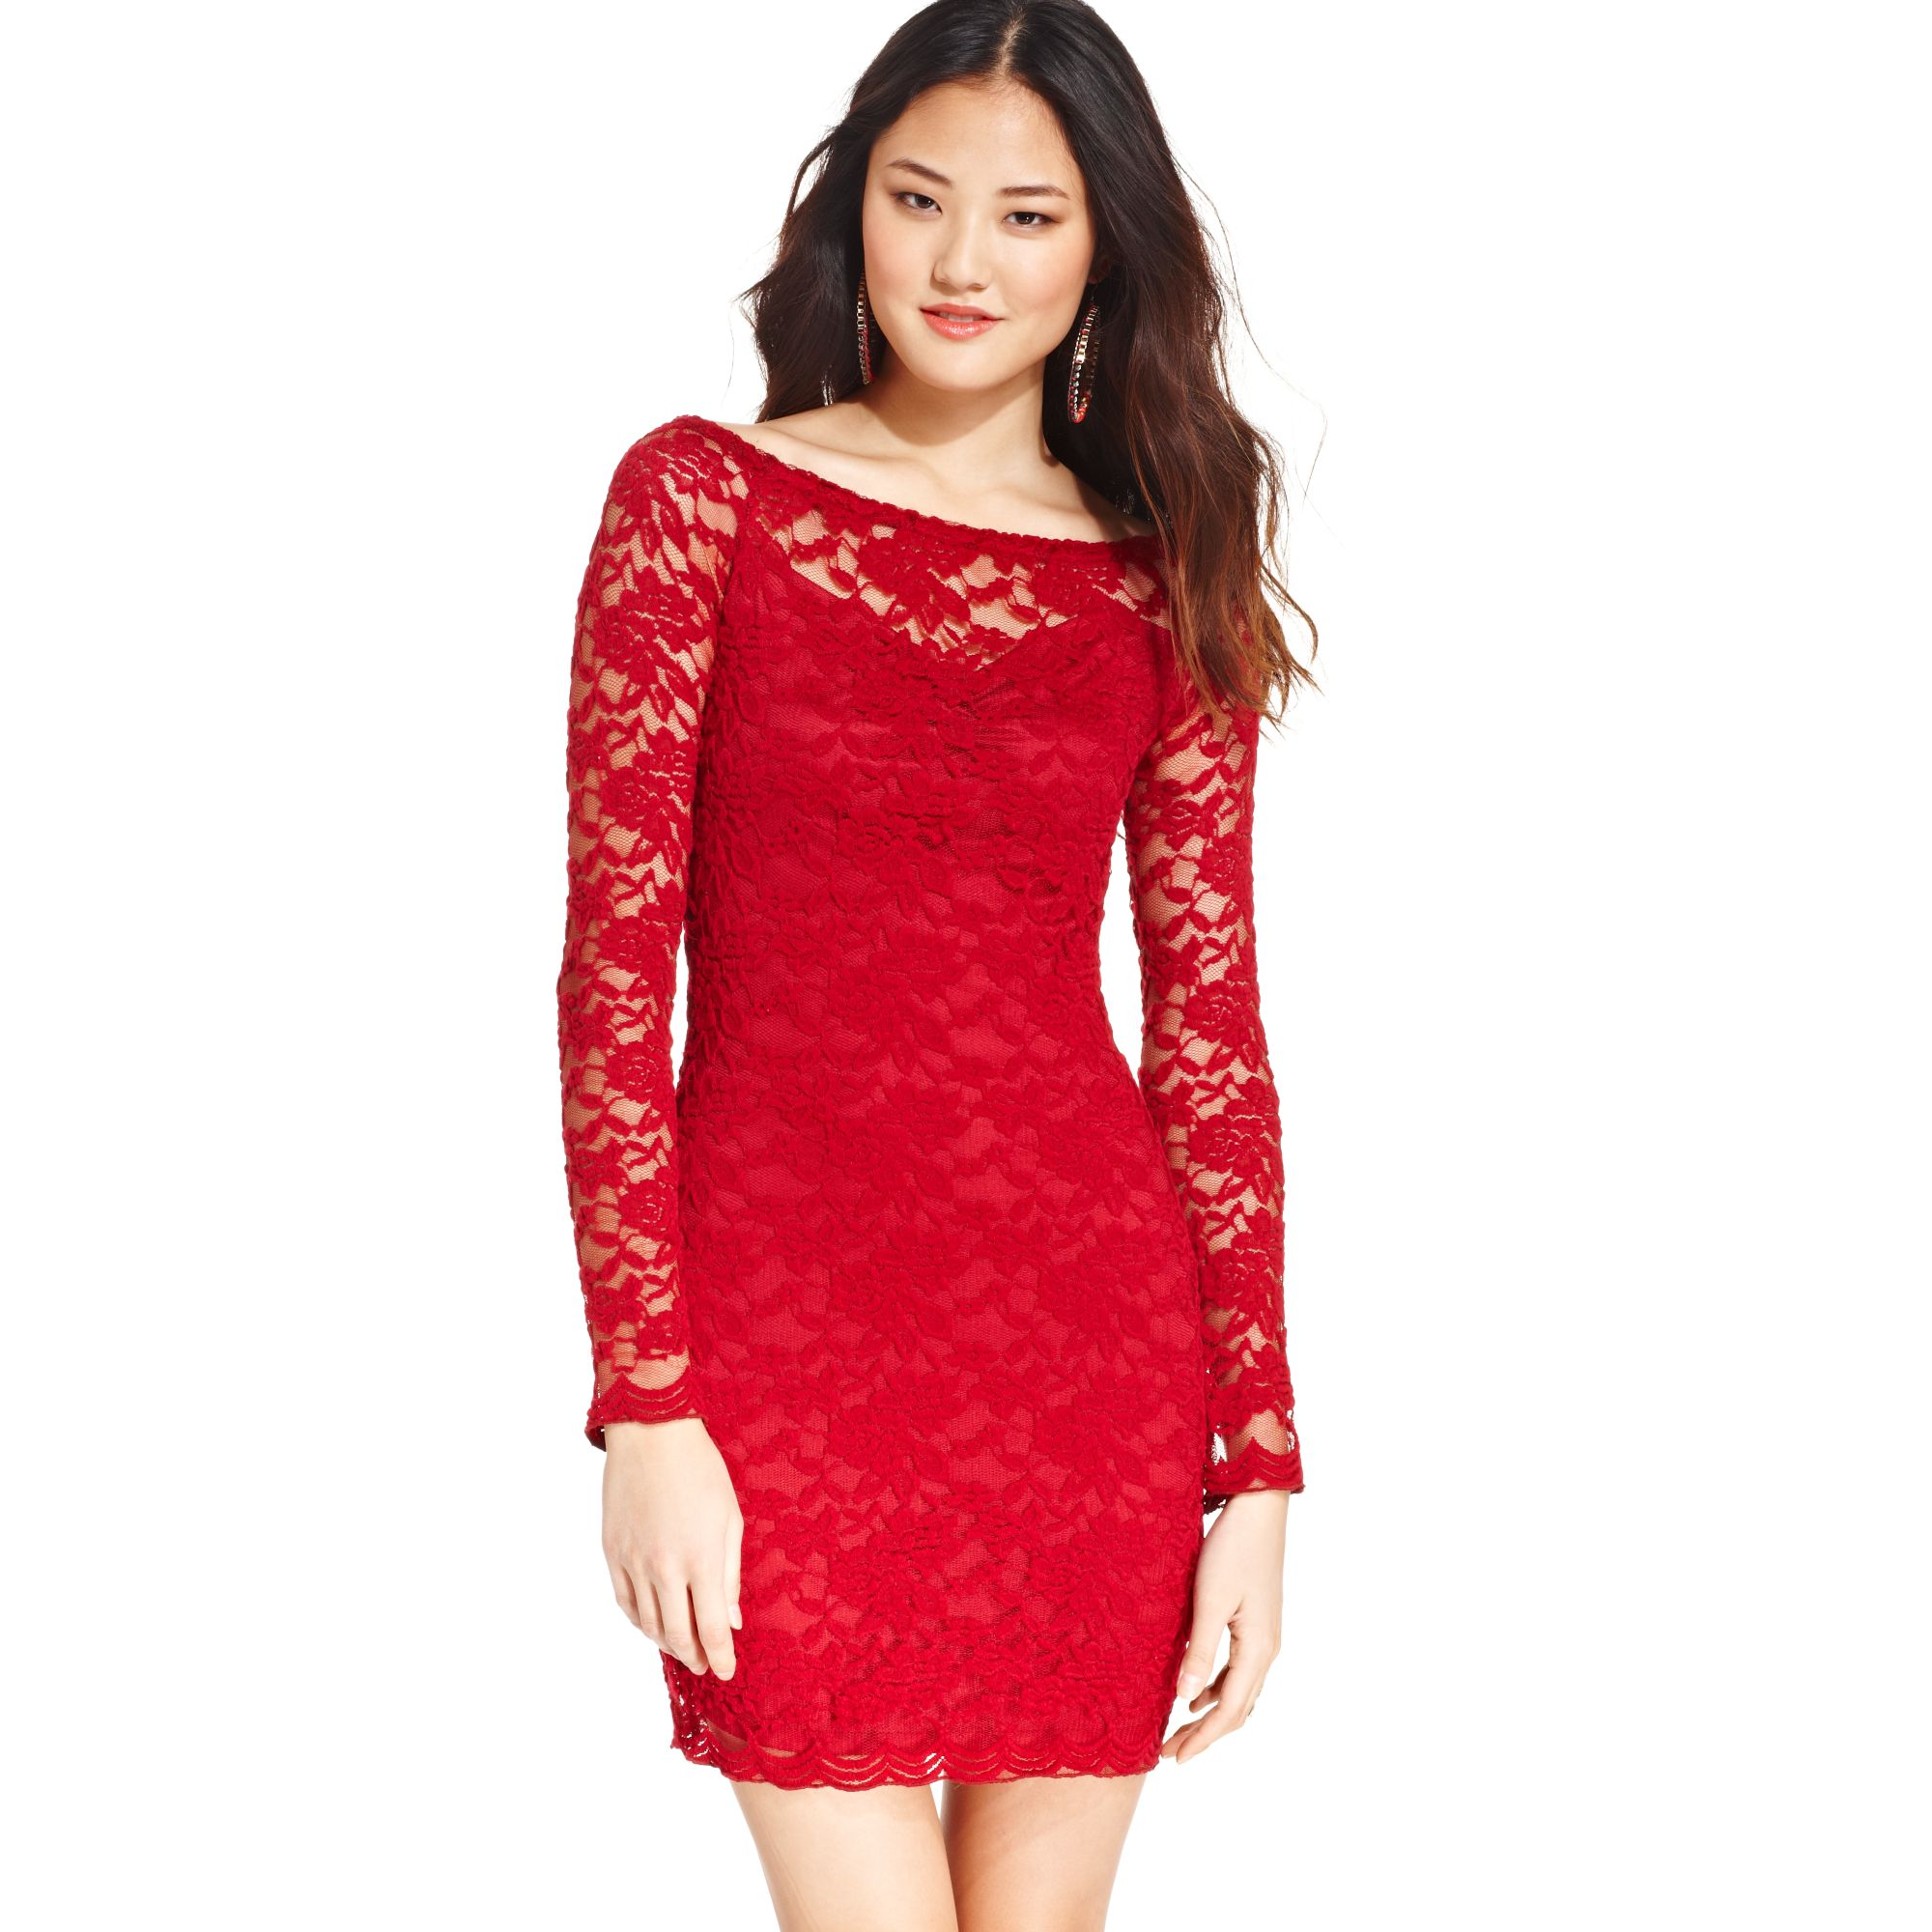 Galerry lace dress juniors